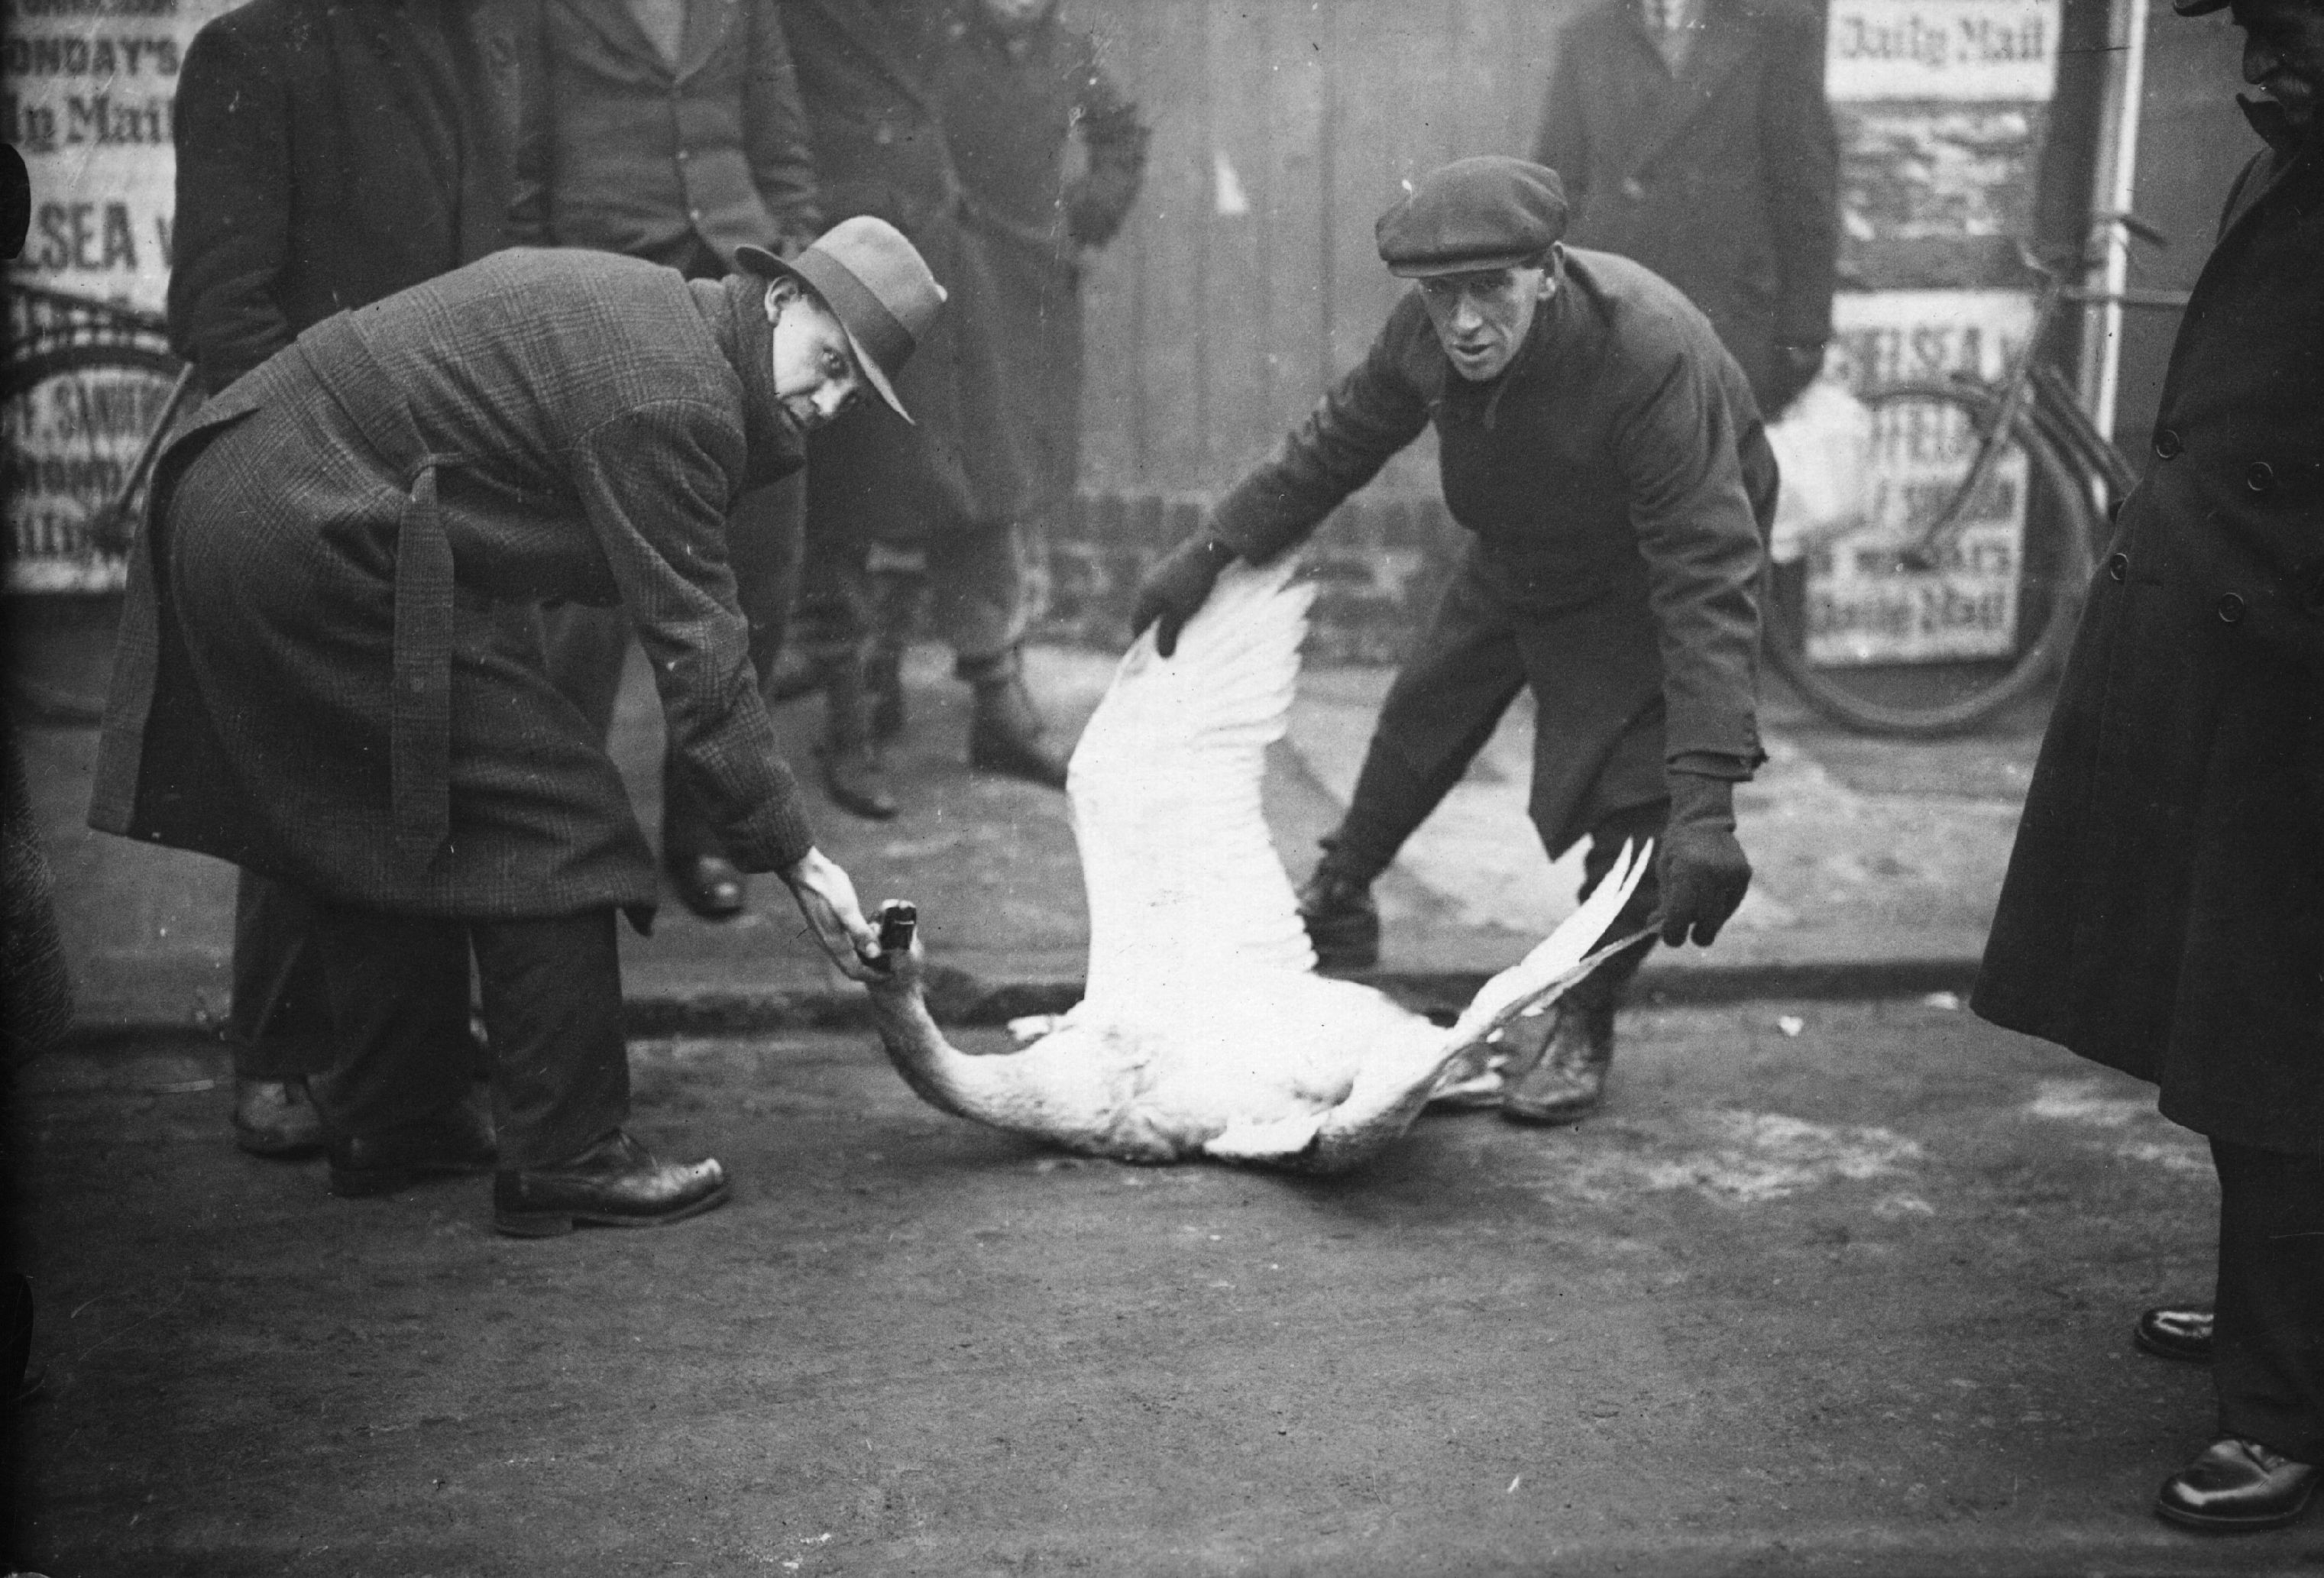 24th January 1934: A swan killed by a car in the thick fog outside Stamford Bridge, London. The bird had landed in the road, exhausted by flying in the bad weather conditions. (Photo by Topical Press Agency/Getty Images)